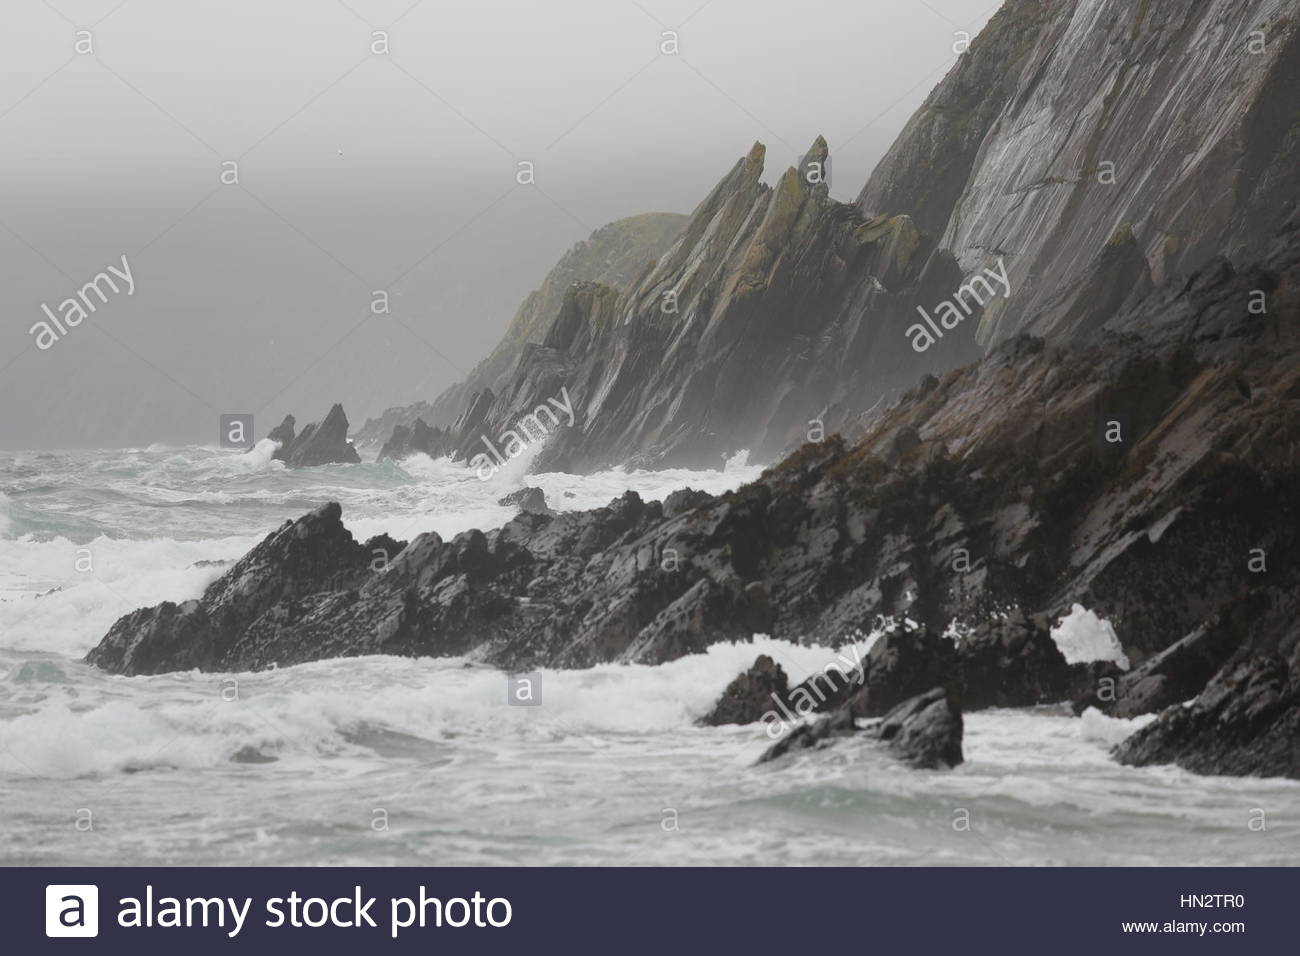 Ireland in all its beauty as the Atlantic Ocean waves crash on rocks near the Great Blasket Island off the coast - Stock Image